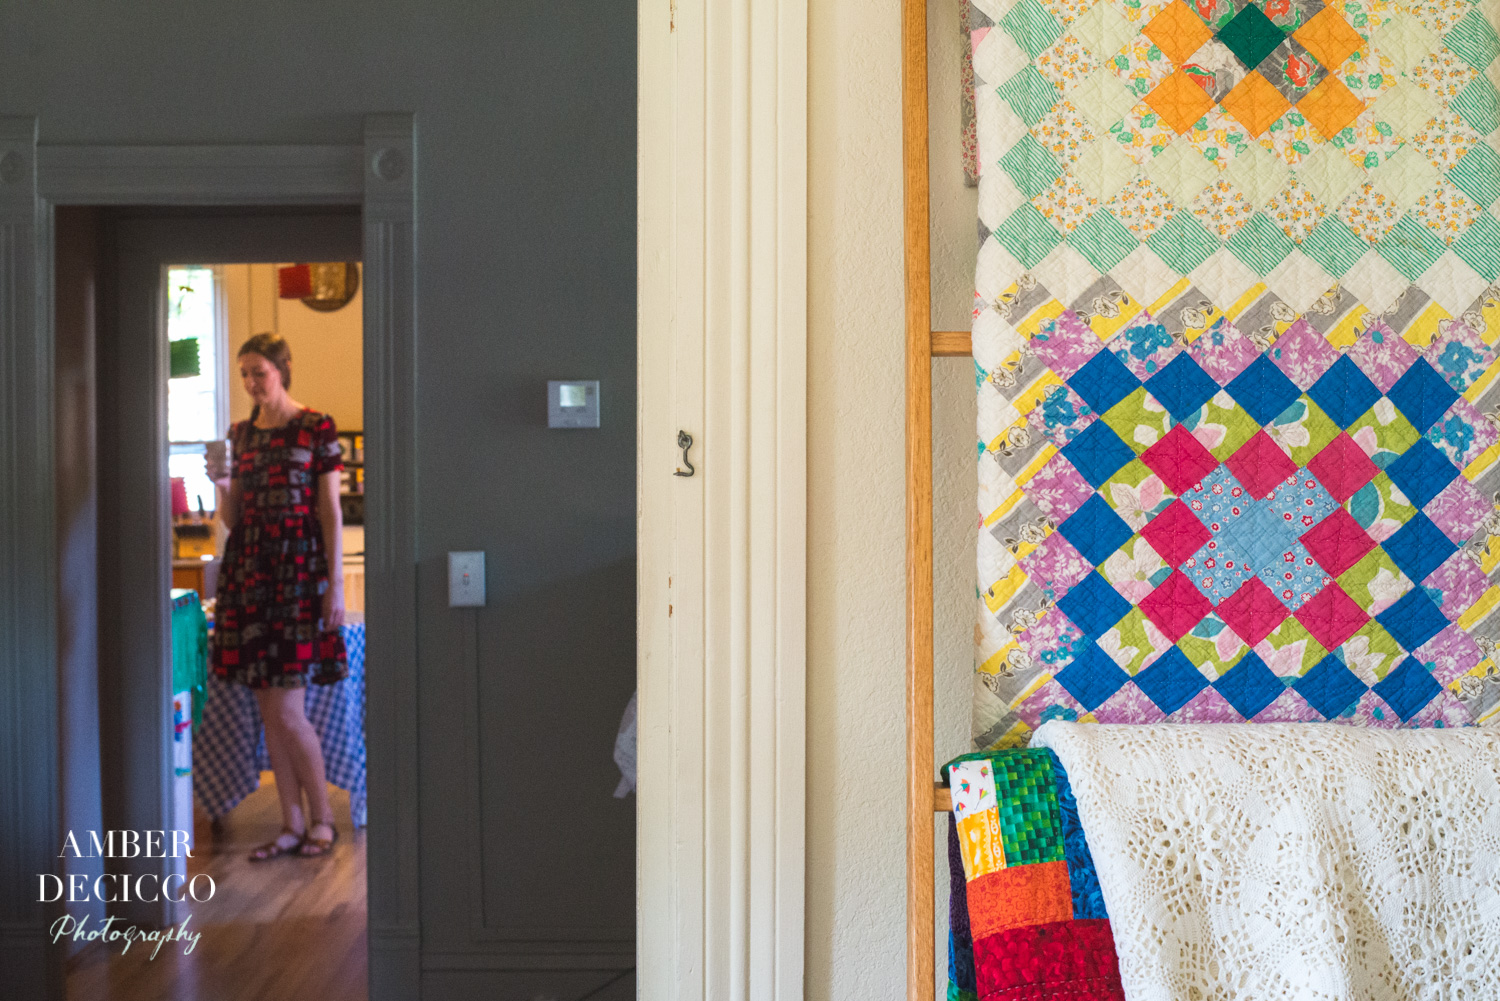 I love this photo! The top quilt was made by her Grandmother and was given to Rachel at her bridal shower. So special!